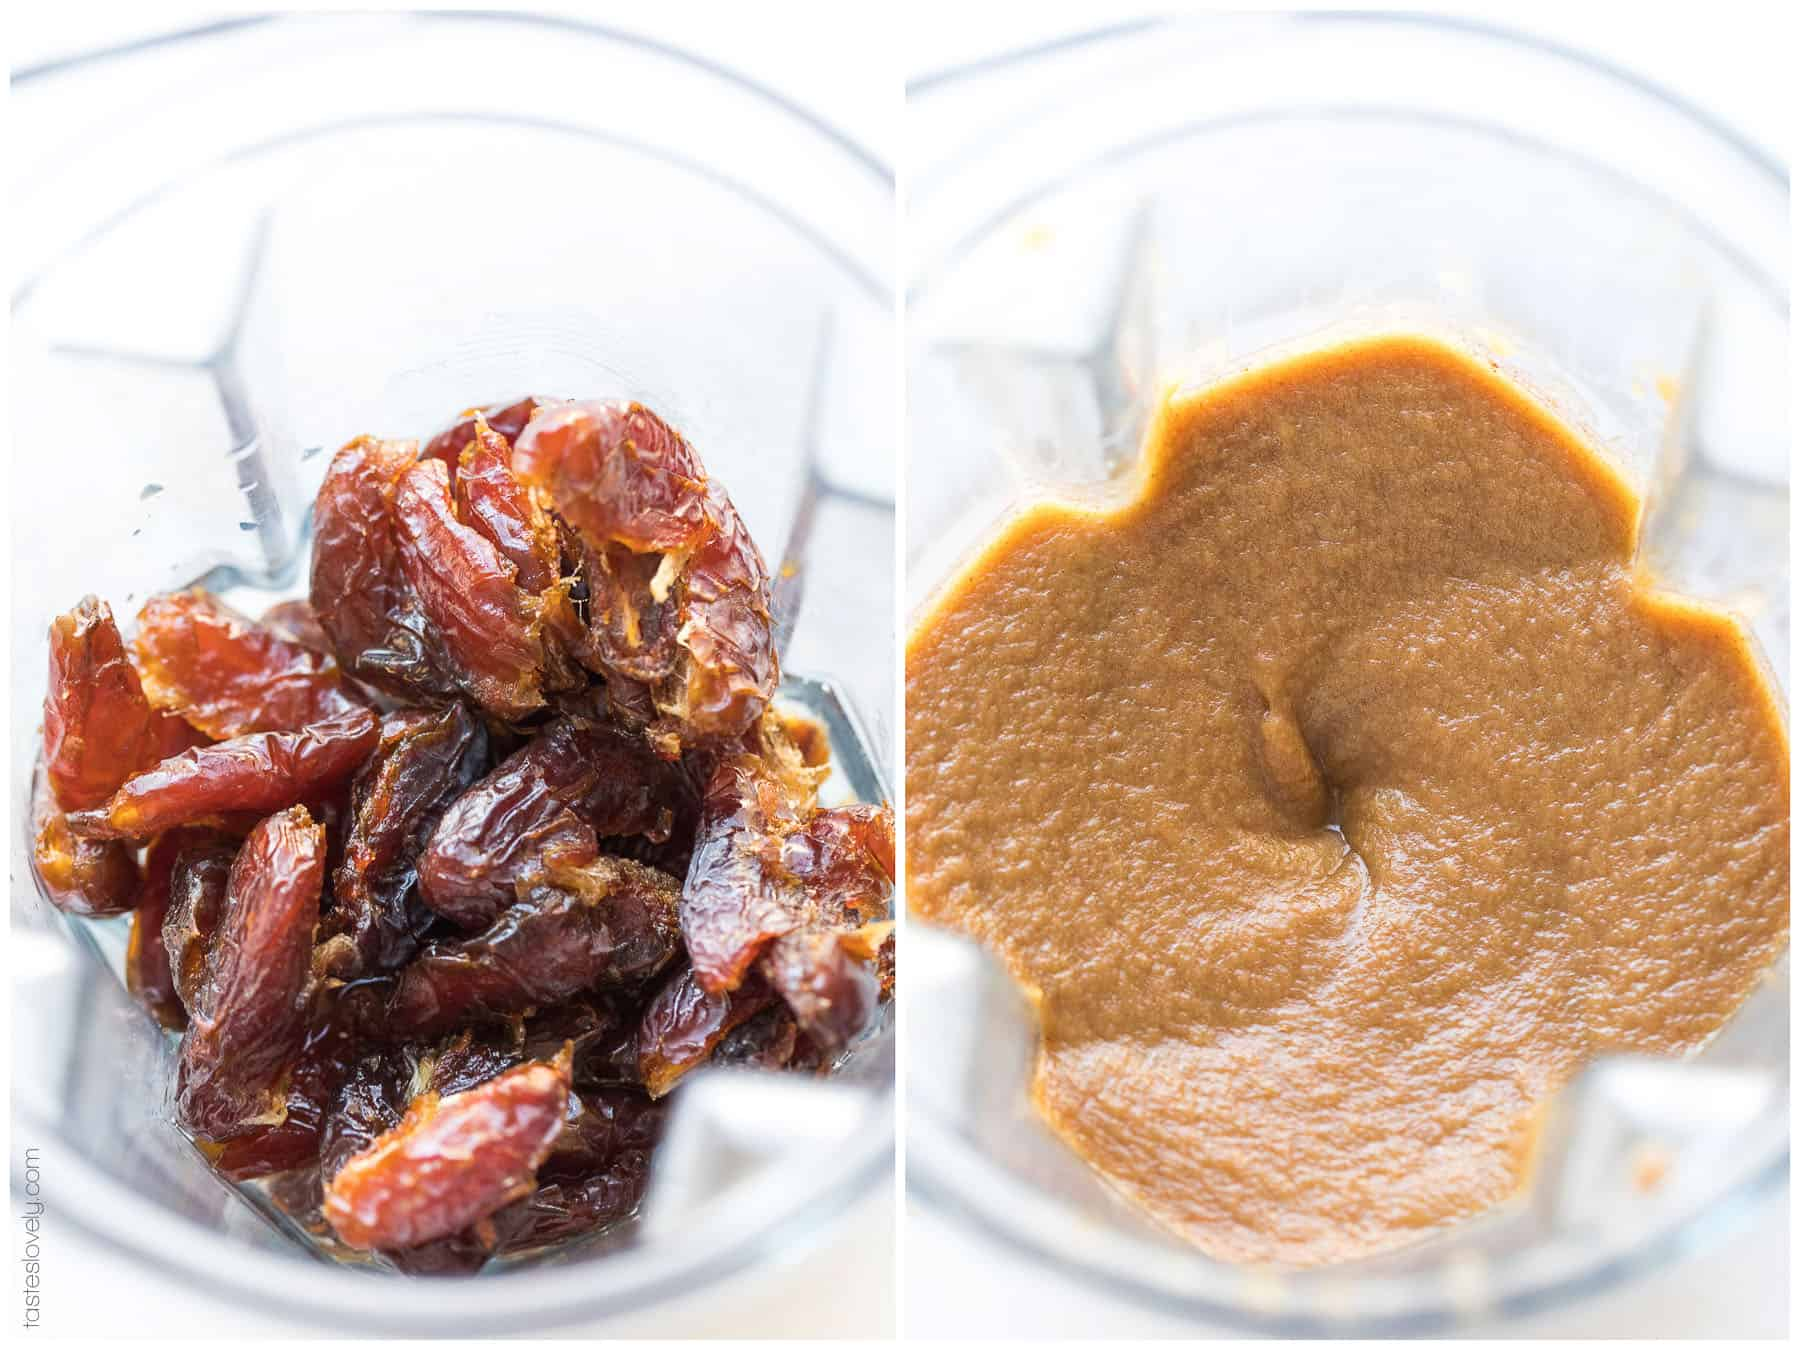 Blender with pitted dates turning into date paste